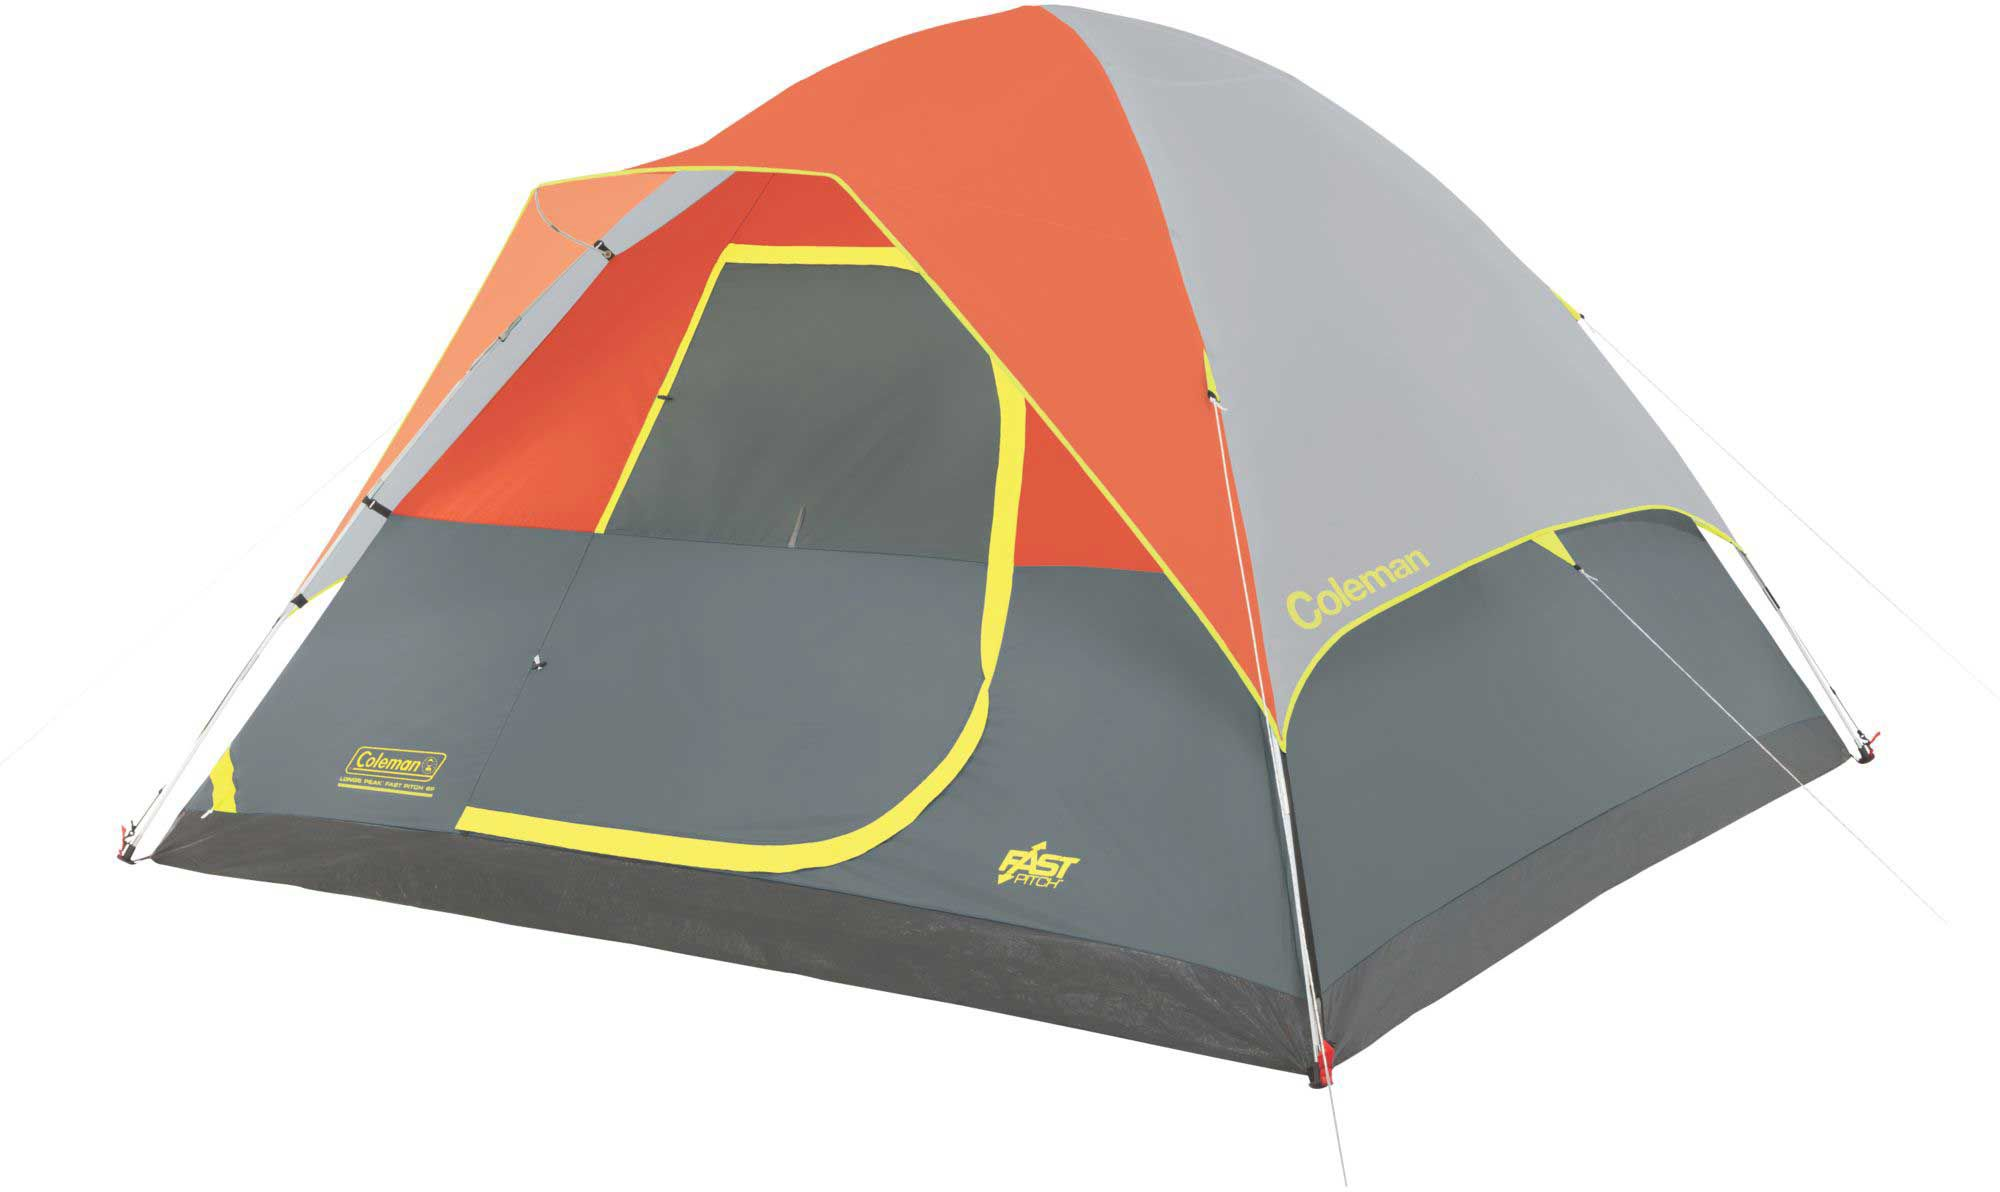 Product Image · Coleman River Gorge Fast Pitch 4 Person Tent  sc 1 st  DICKu0027S Sporting Goods & Coleman Tents | Best Price Guarantee at DICKu0027S